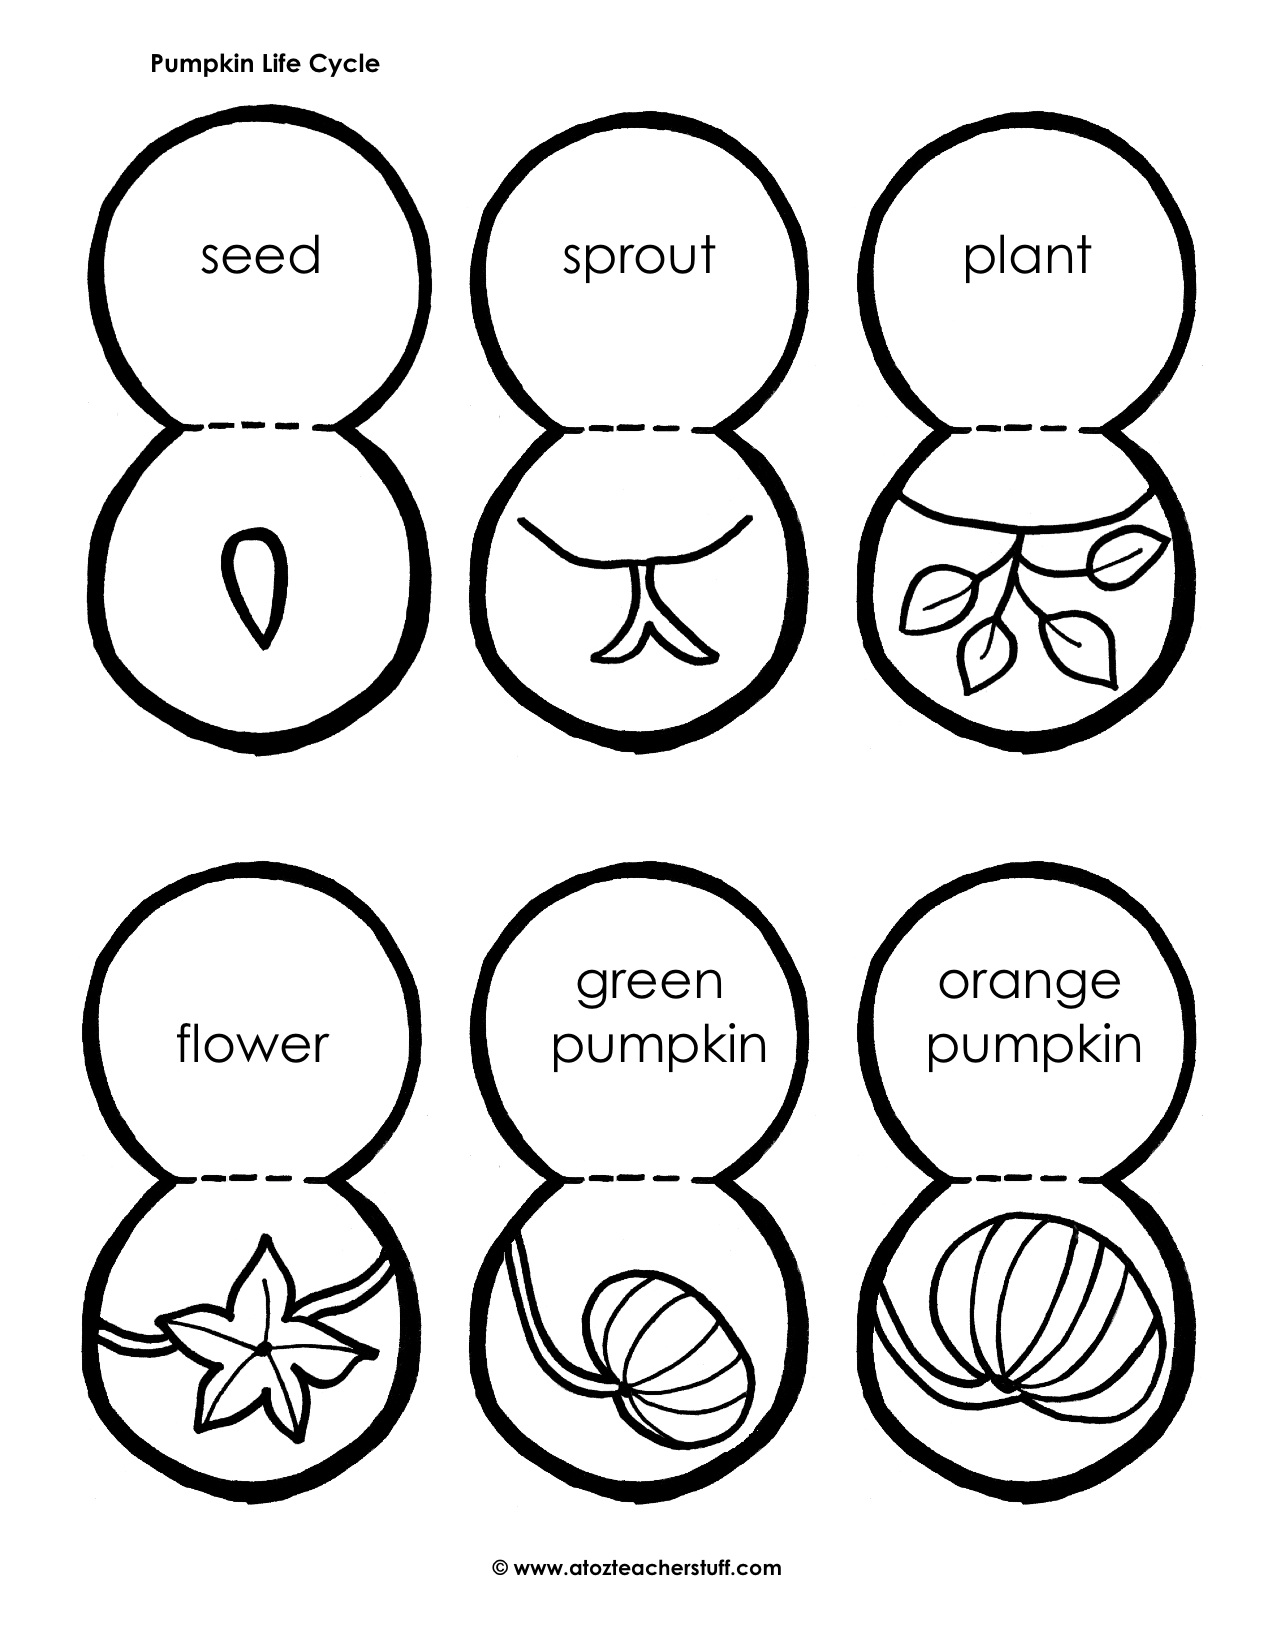 picture about Pumpkin Life Cycle Printable called Pumpkin Seeds Drawing at  Free of charge for unique